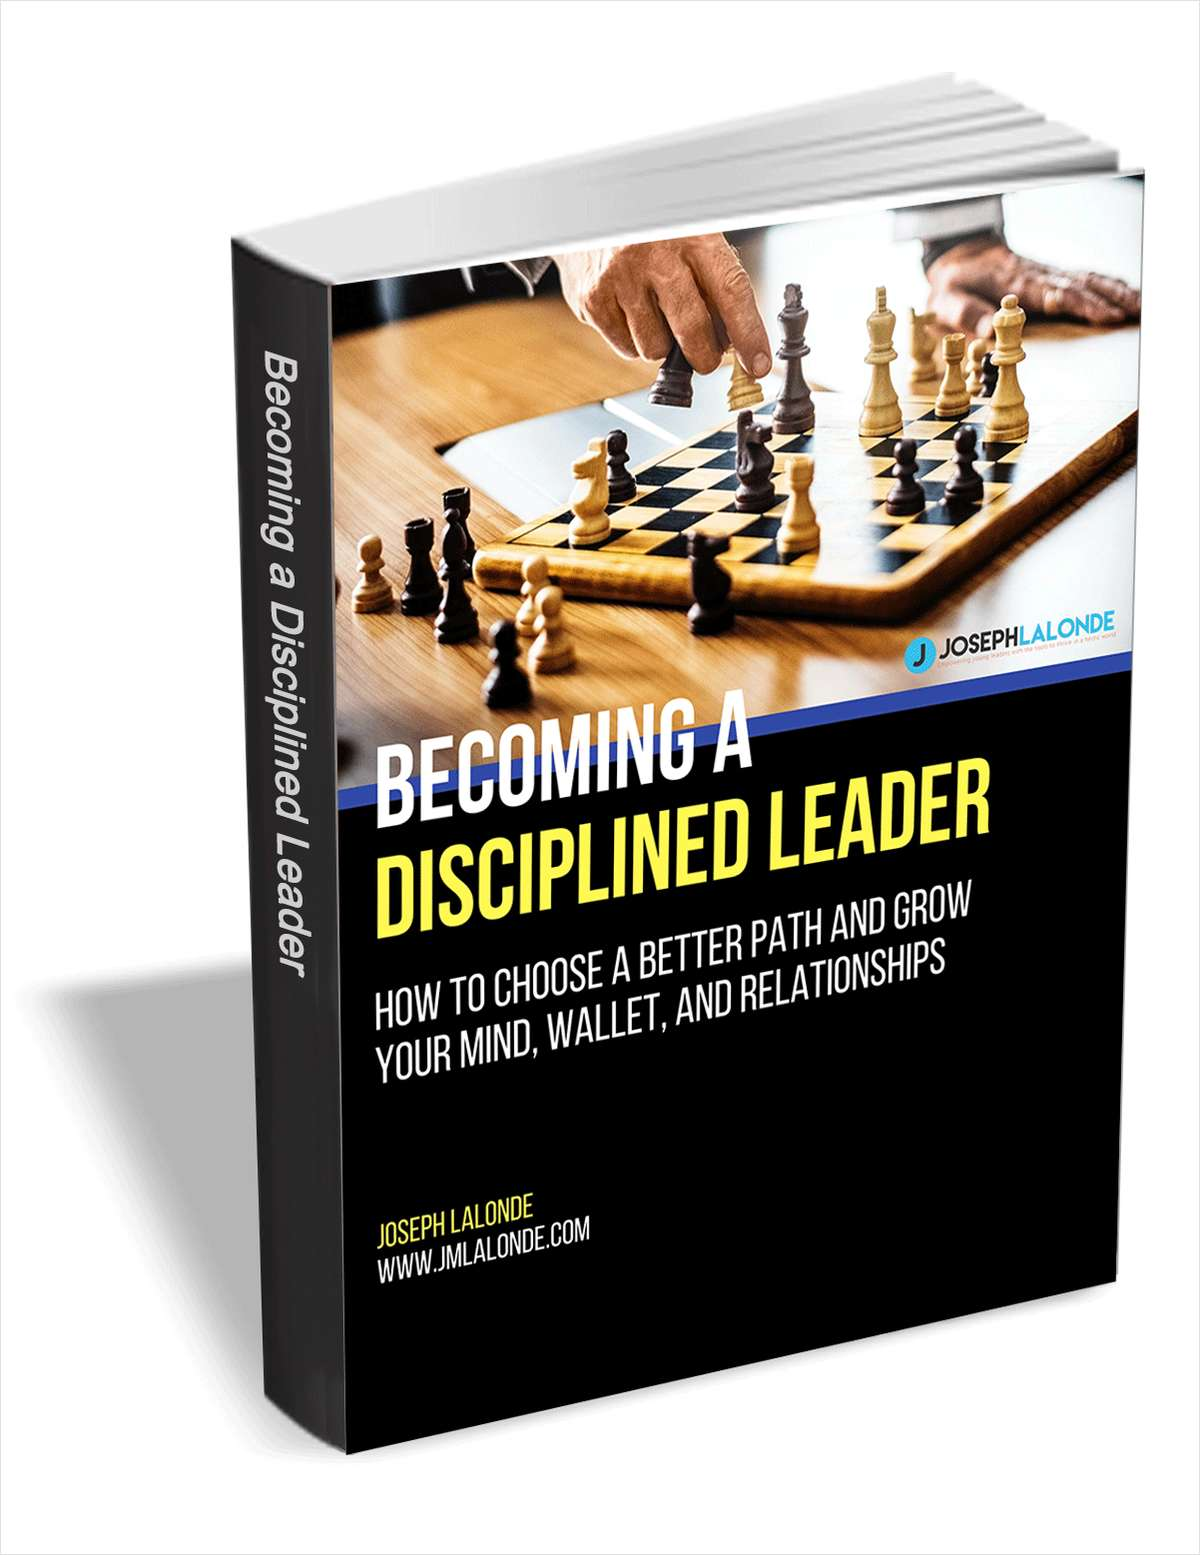 Becoming a Disciplined Leader - How to Choose a Better Path and Grow Your Mind, Wallet, and Relationships